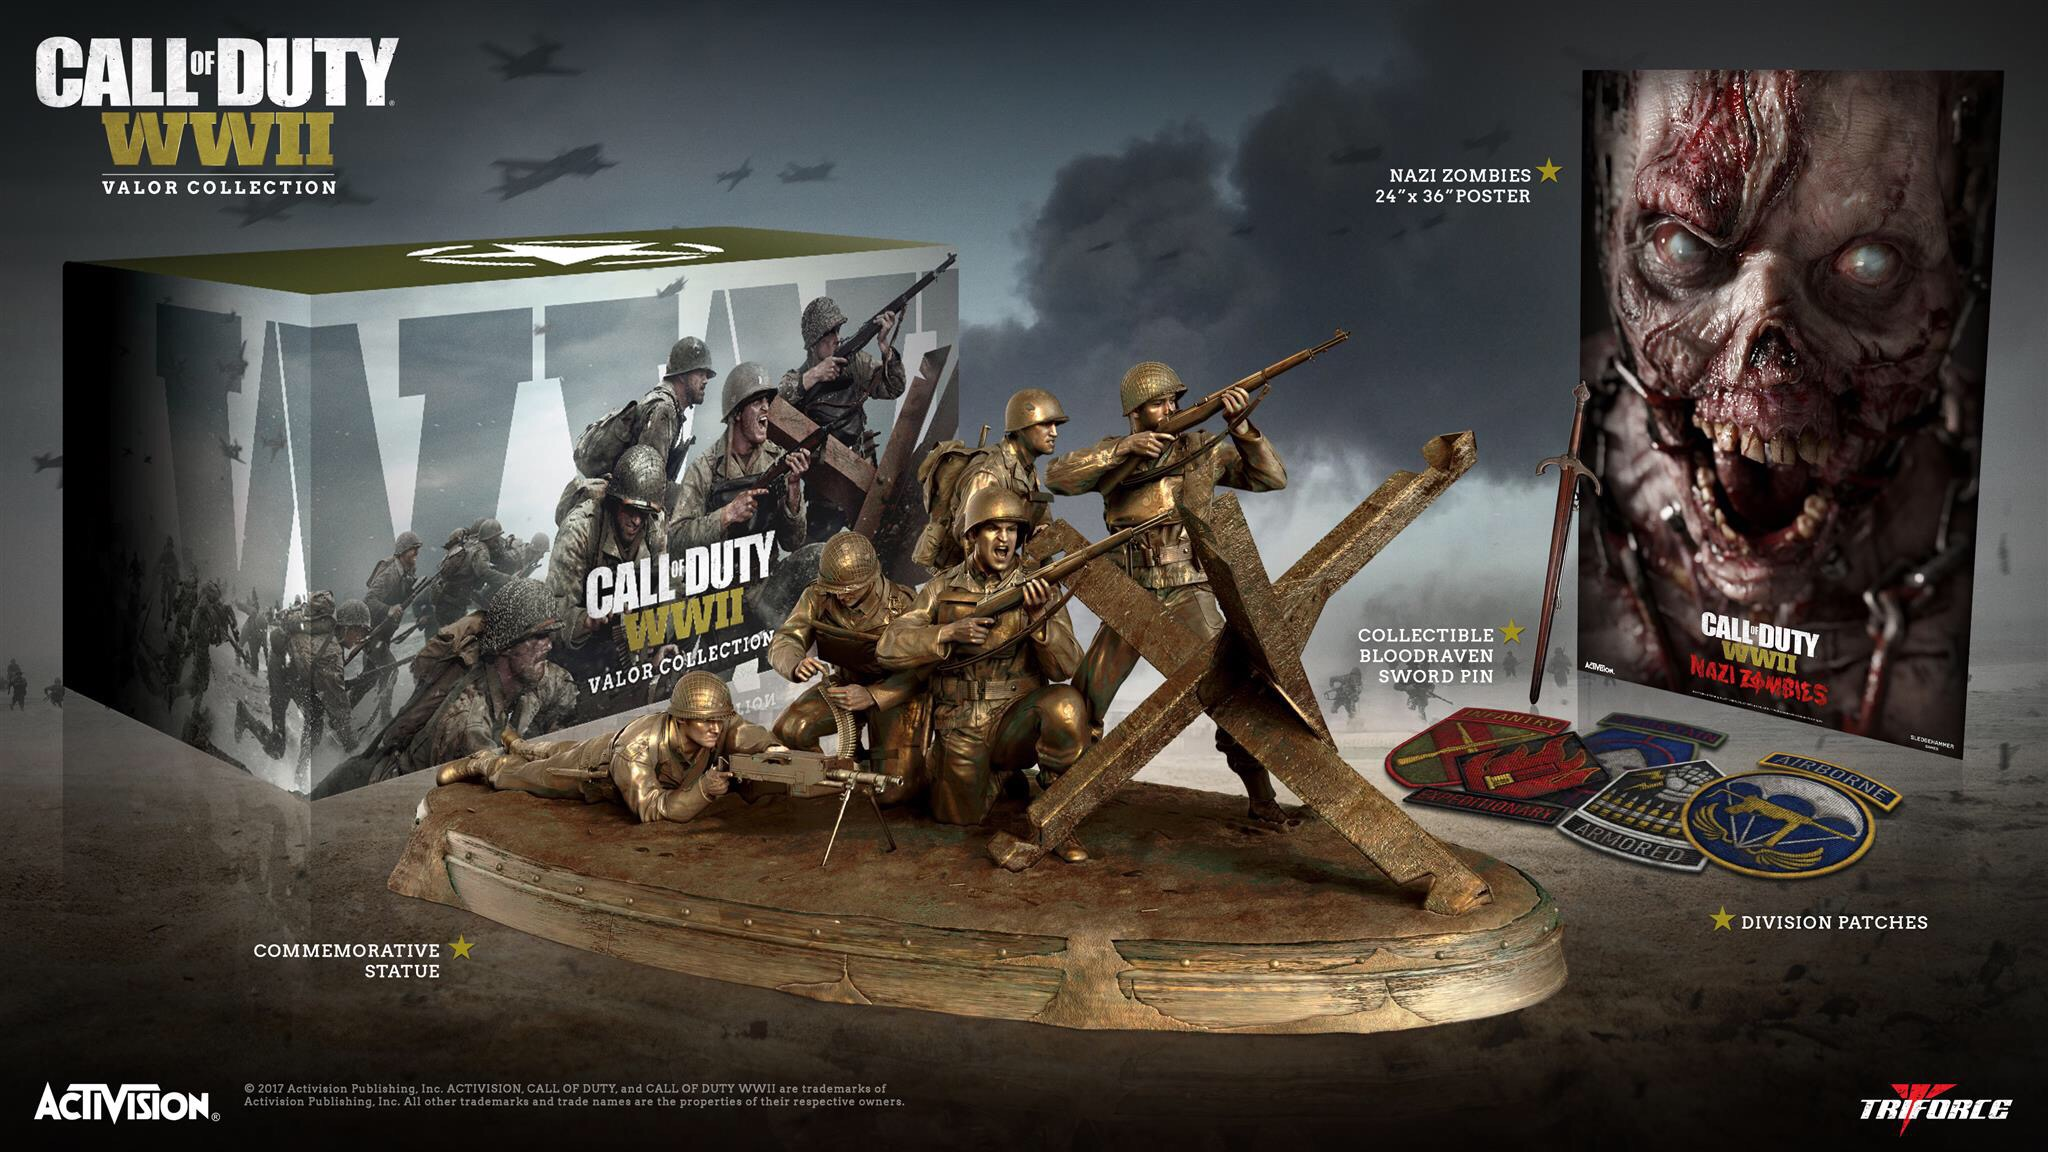 The Centerpiece Of Valor Collection Is Bronze Statue That Appears To Be Inspired By A D Day Scene